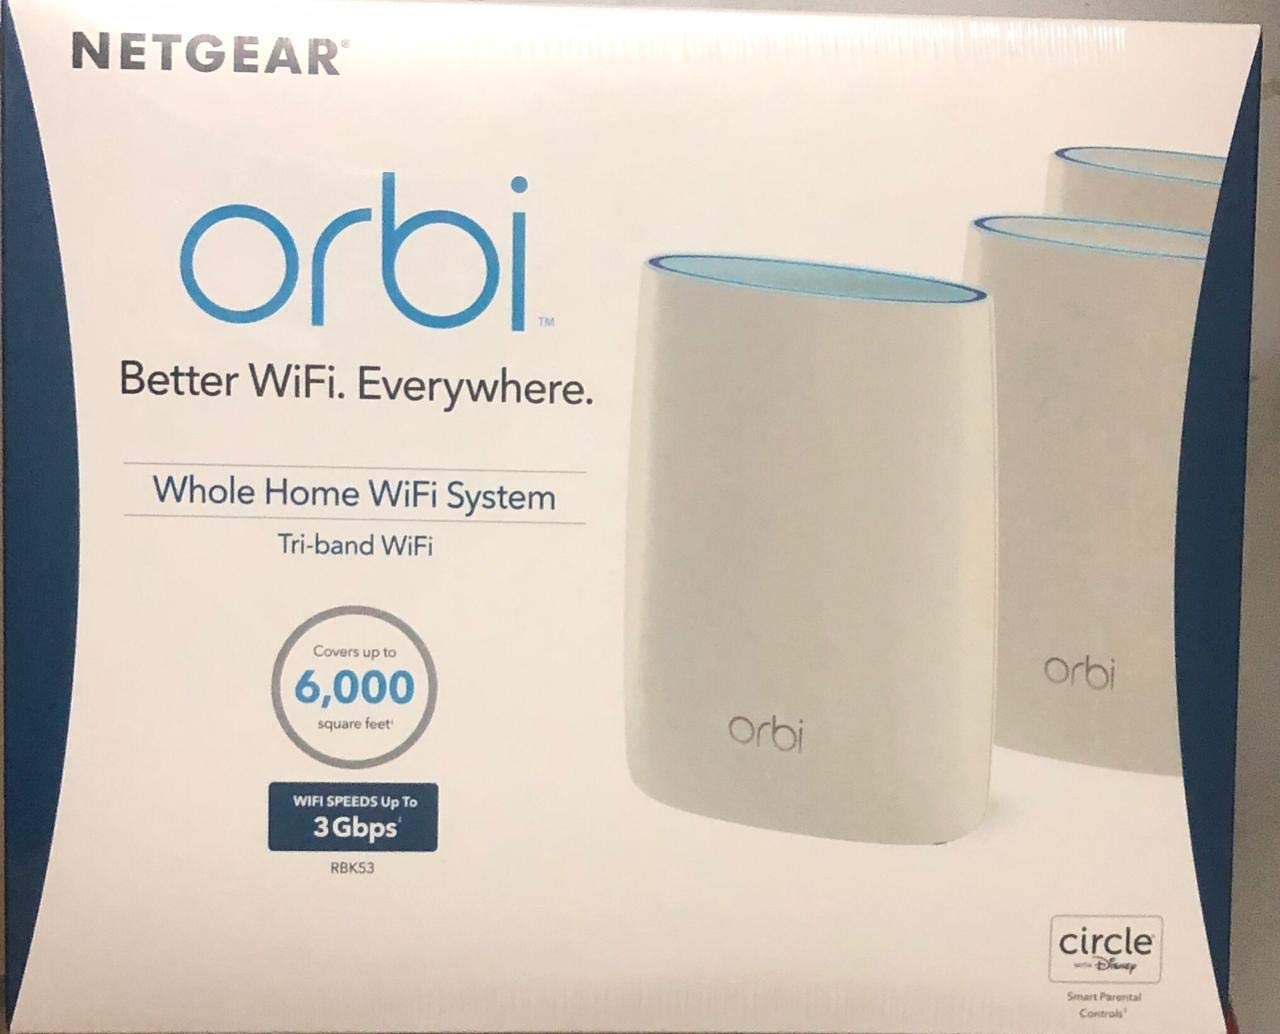 Netgear RBK53 Orbi AC3000 Tri-band WiFi 3pack It covers homes up to 6000 square feet with strong WiFi signals